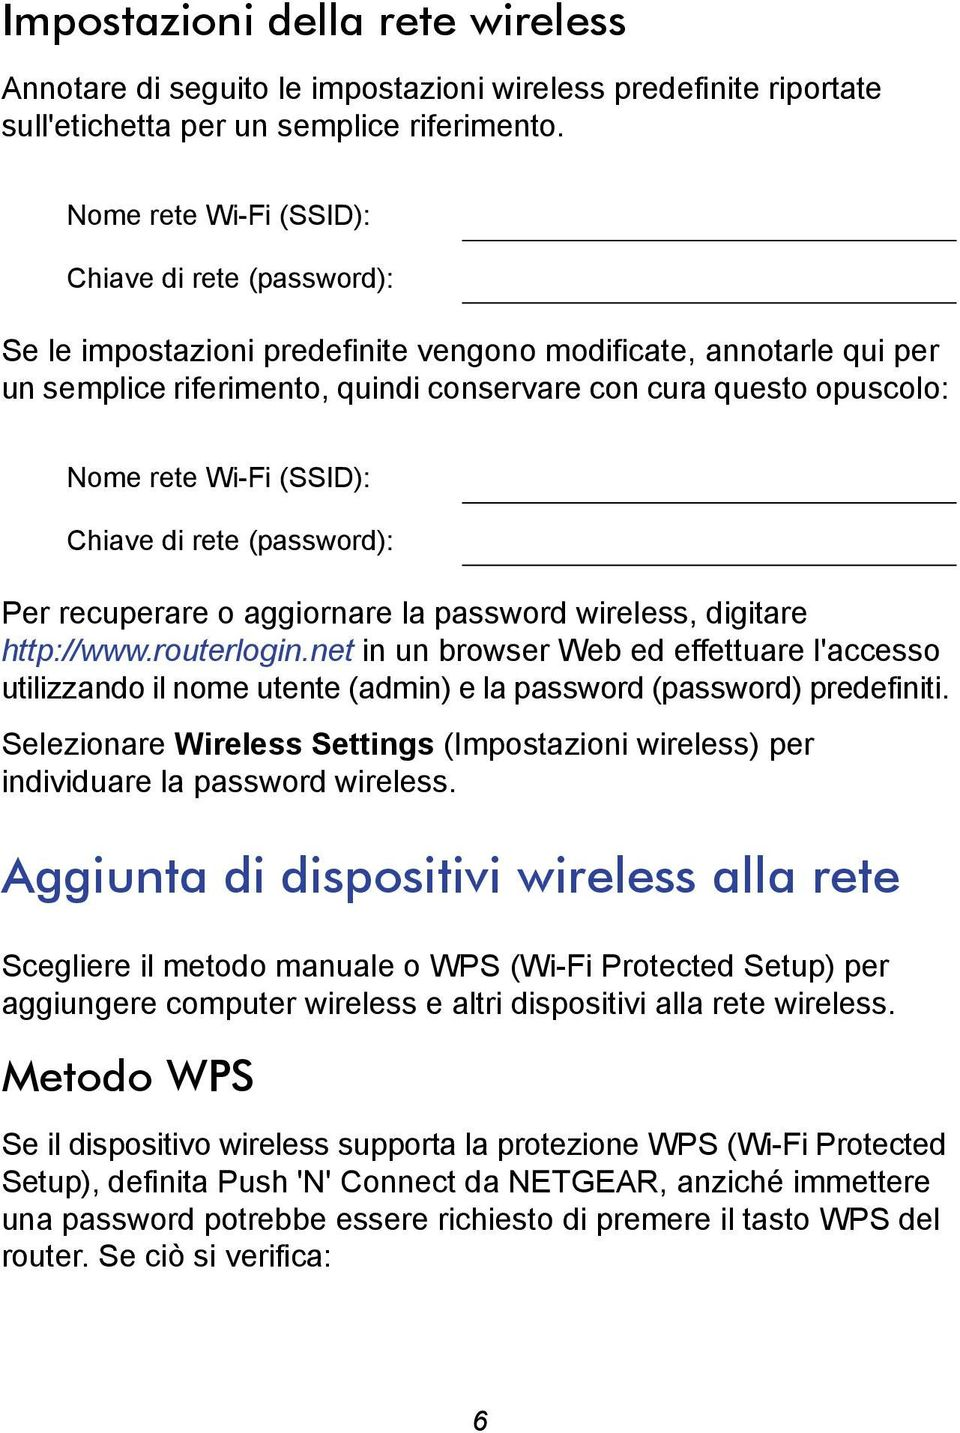 Wi-Fi (SSID): Chiave di rete (password): Per recuperare o aggiornare la password wireless, digitare http://www.routerlogin.